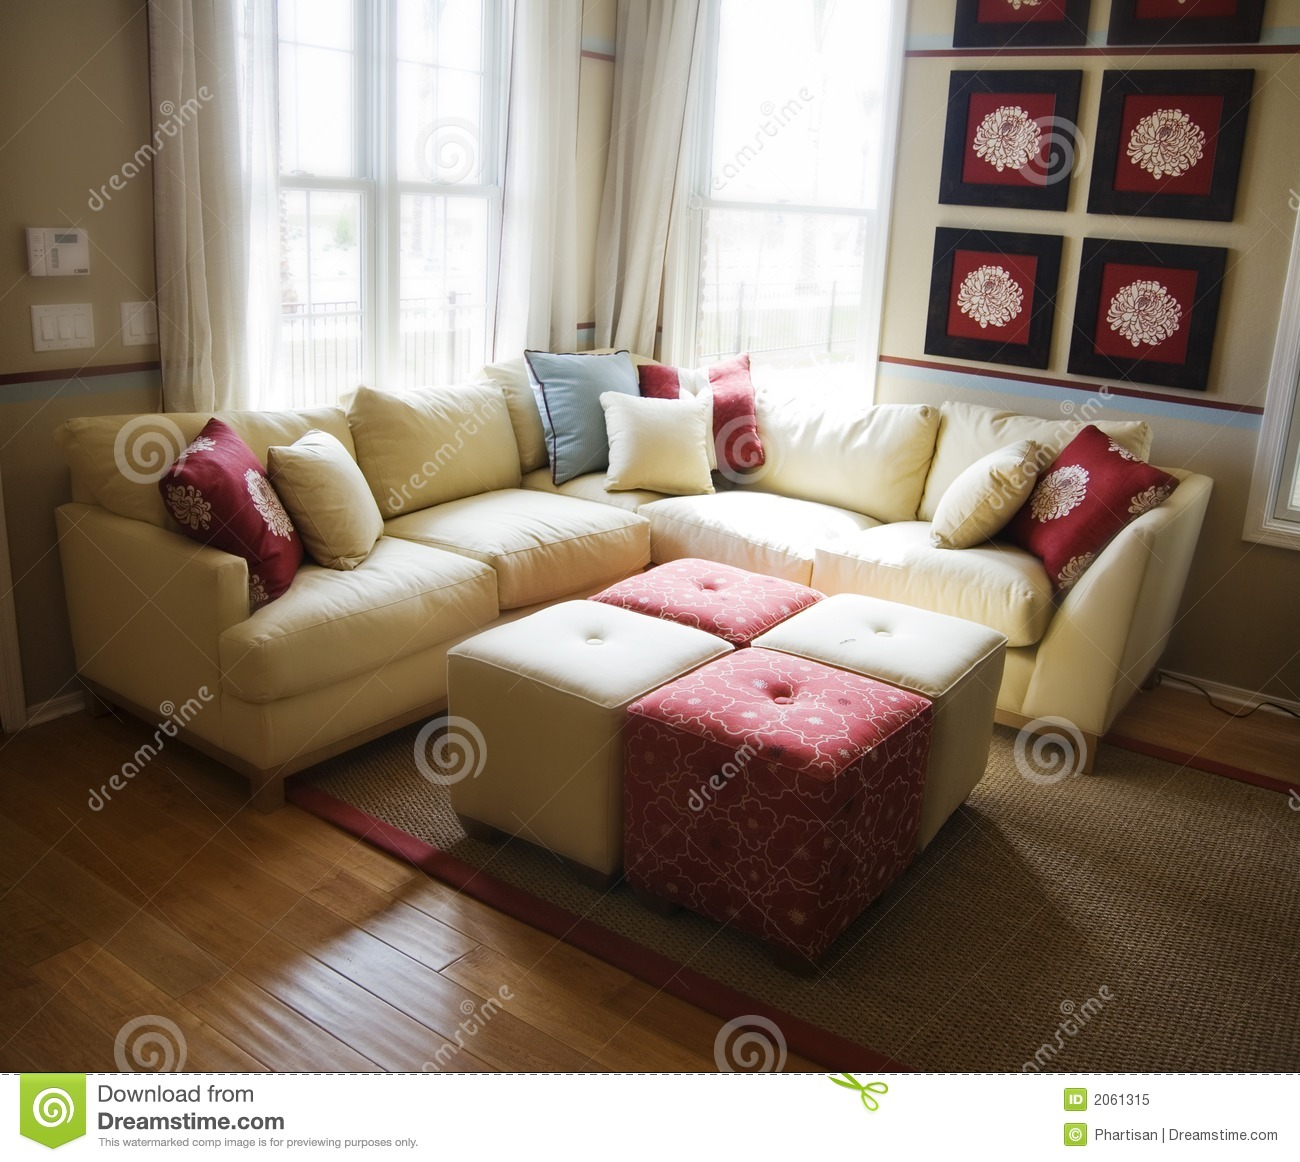 Living Room Hardwood Living Room hardwood flooring in living room stock photo image 2061290 royalty free photo